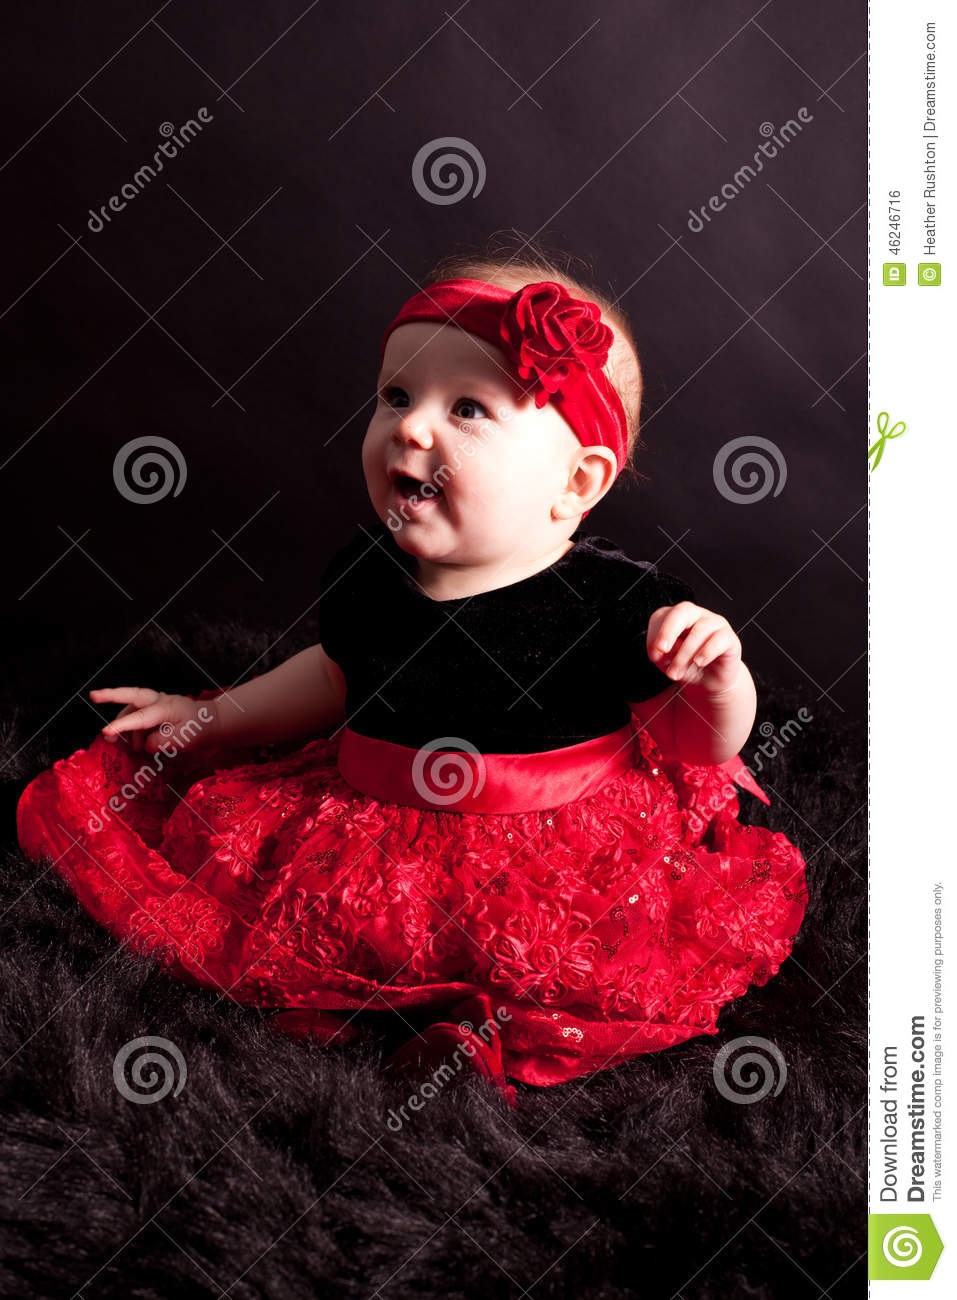 Portrait of smiling baby girl in special outfit of dark t shirt and full red  skirt and matching red hair band b5c5ac9f968